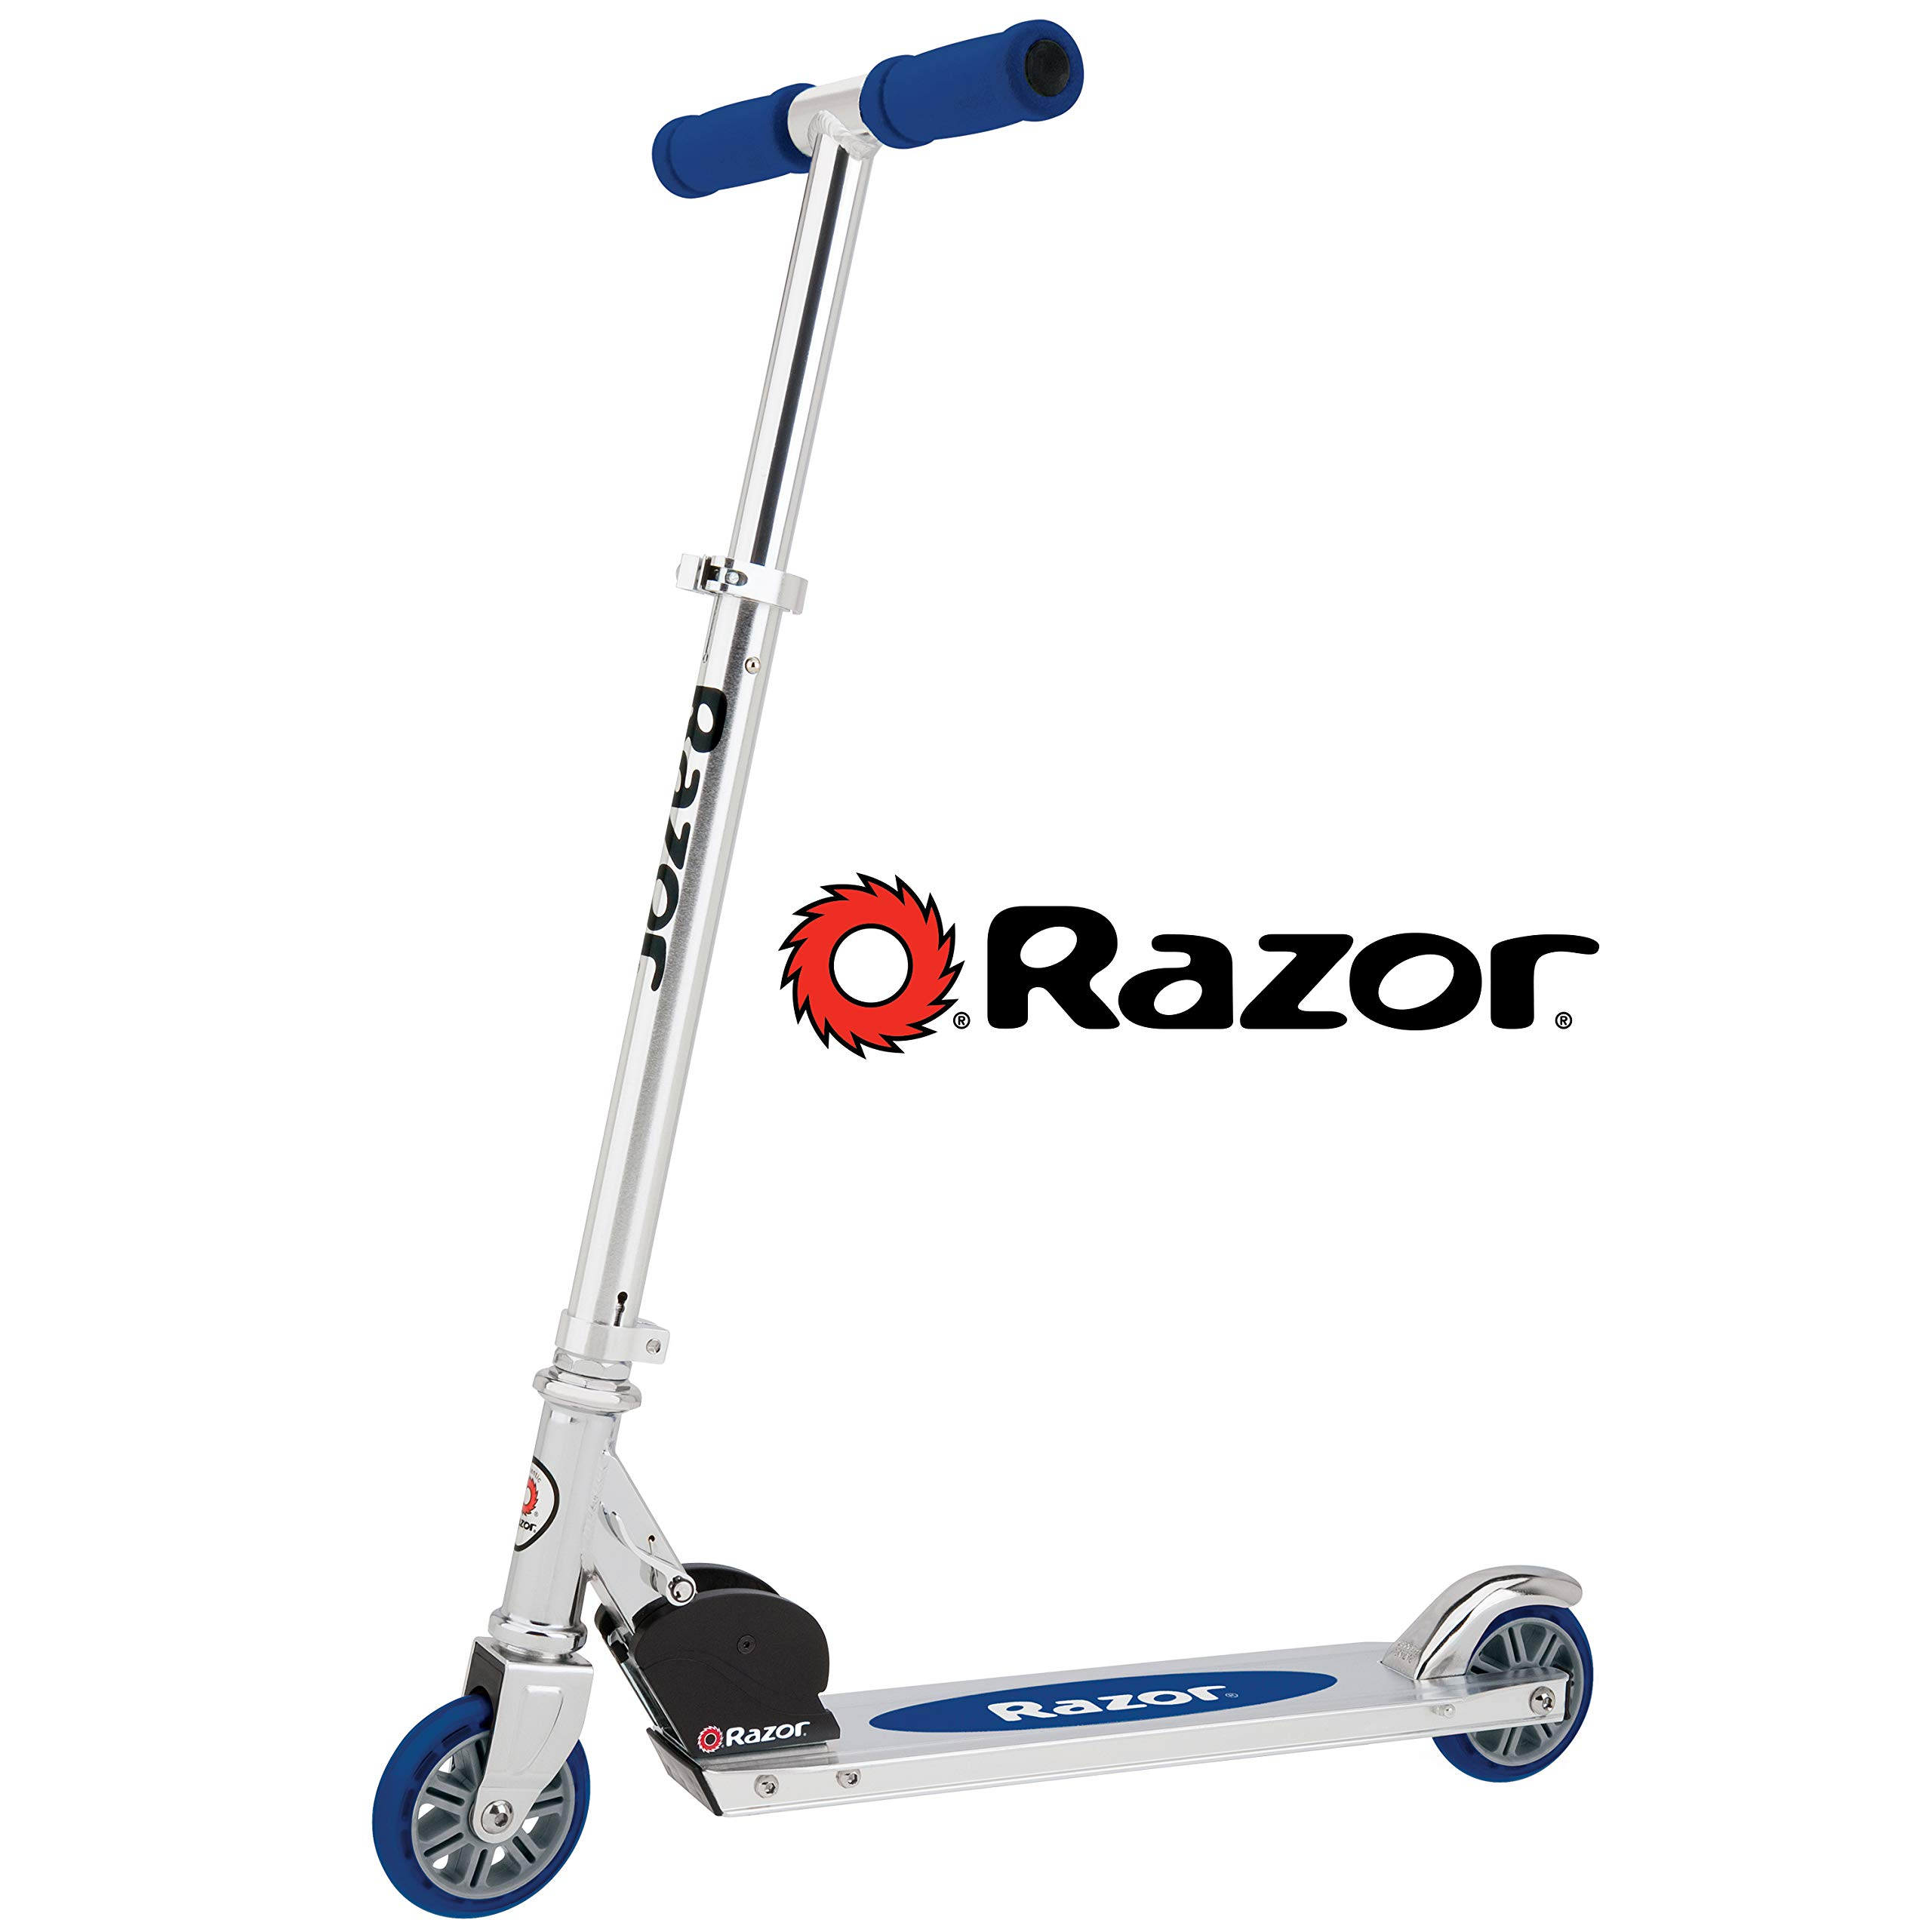 Razor A Kick Scooter - Blue - FFP - 13010049 by Razor